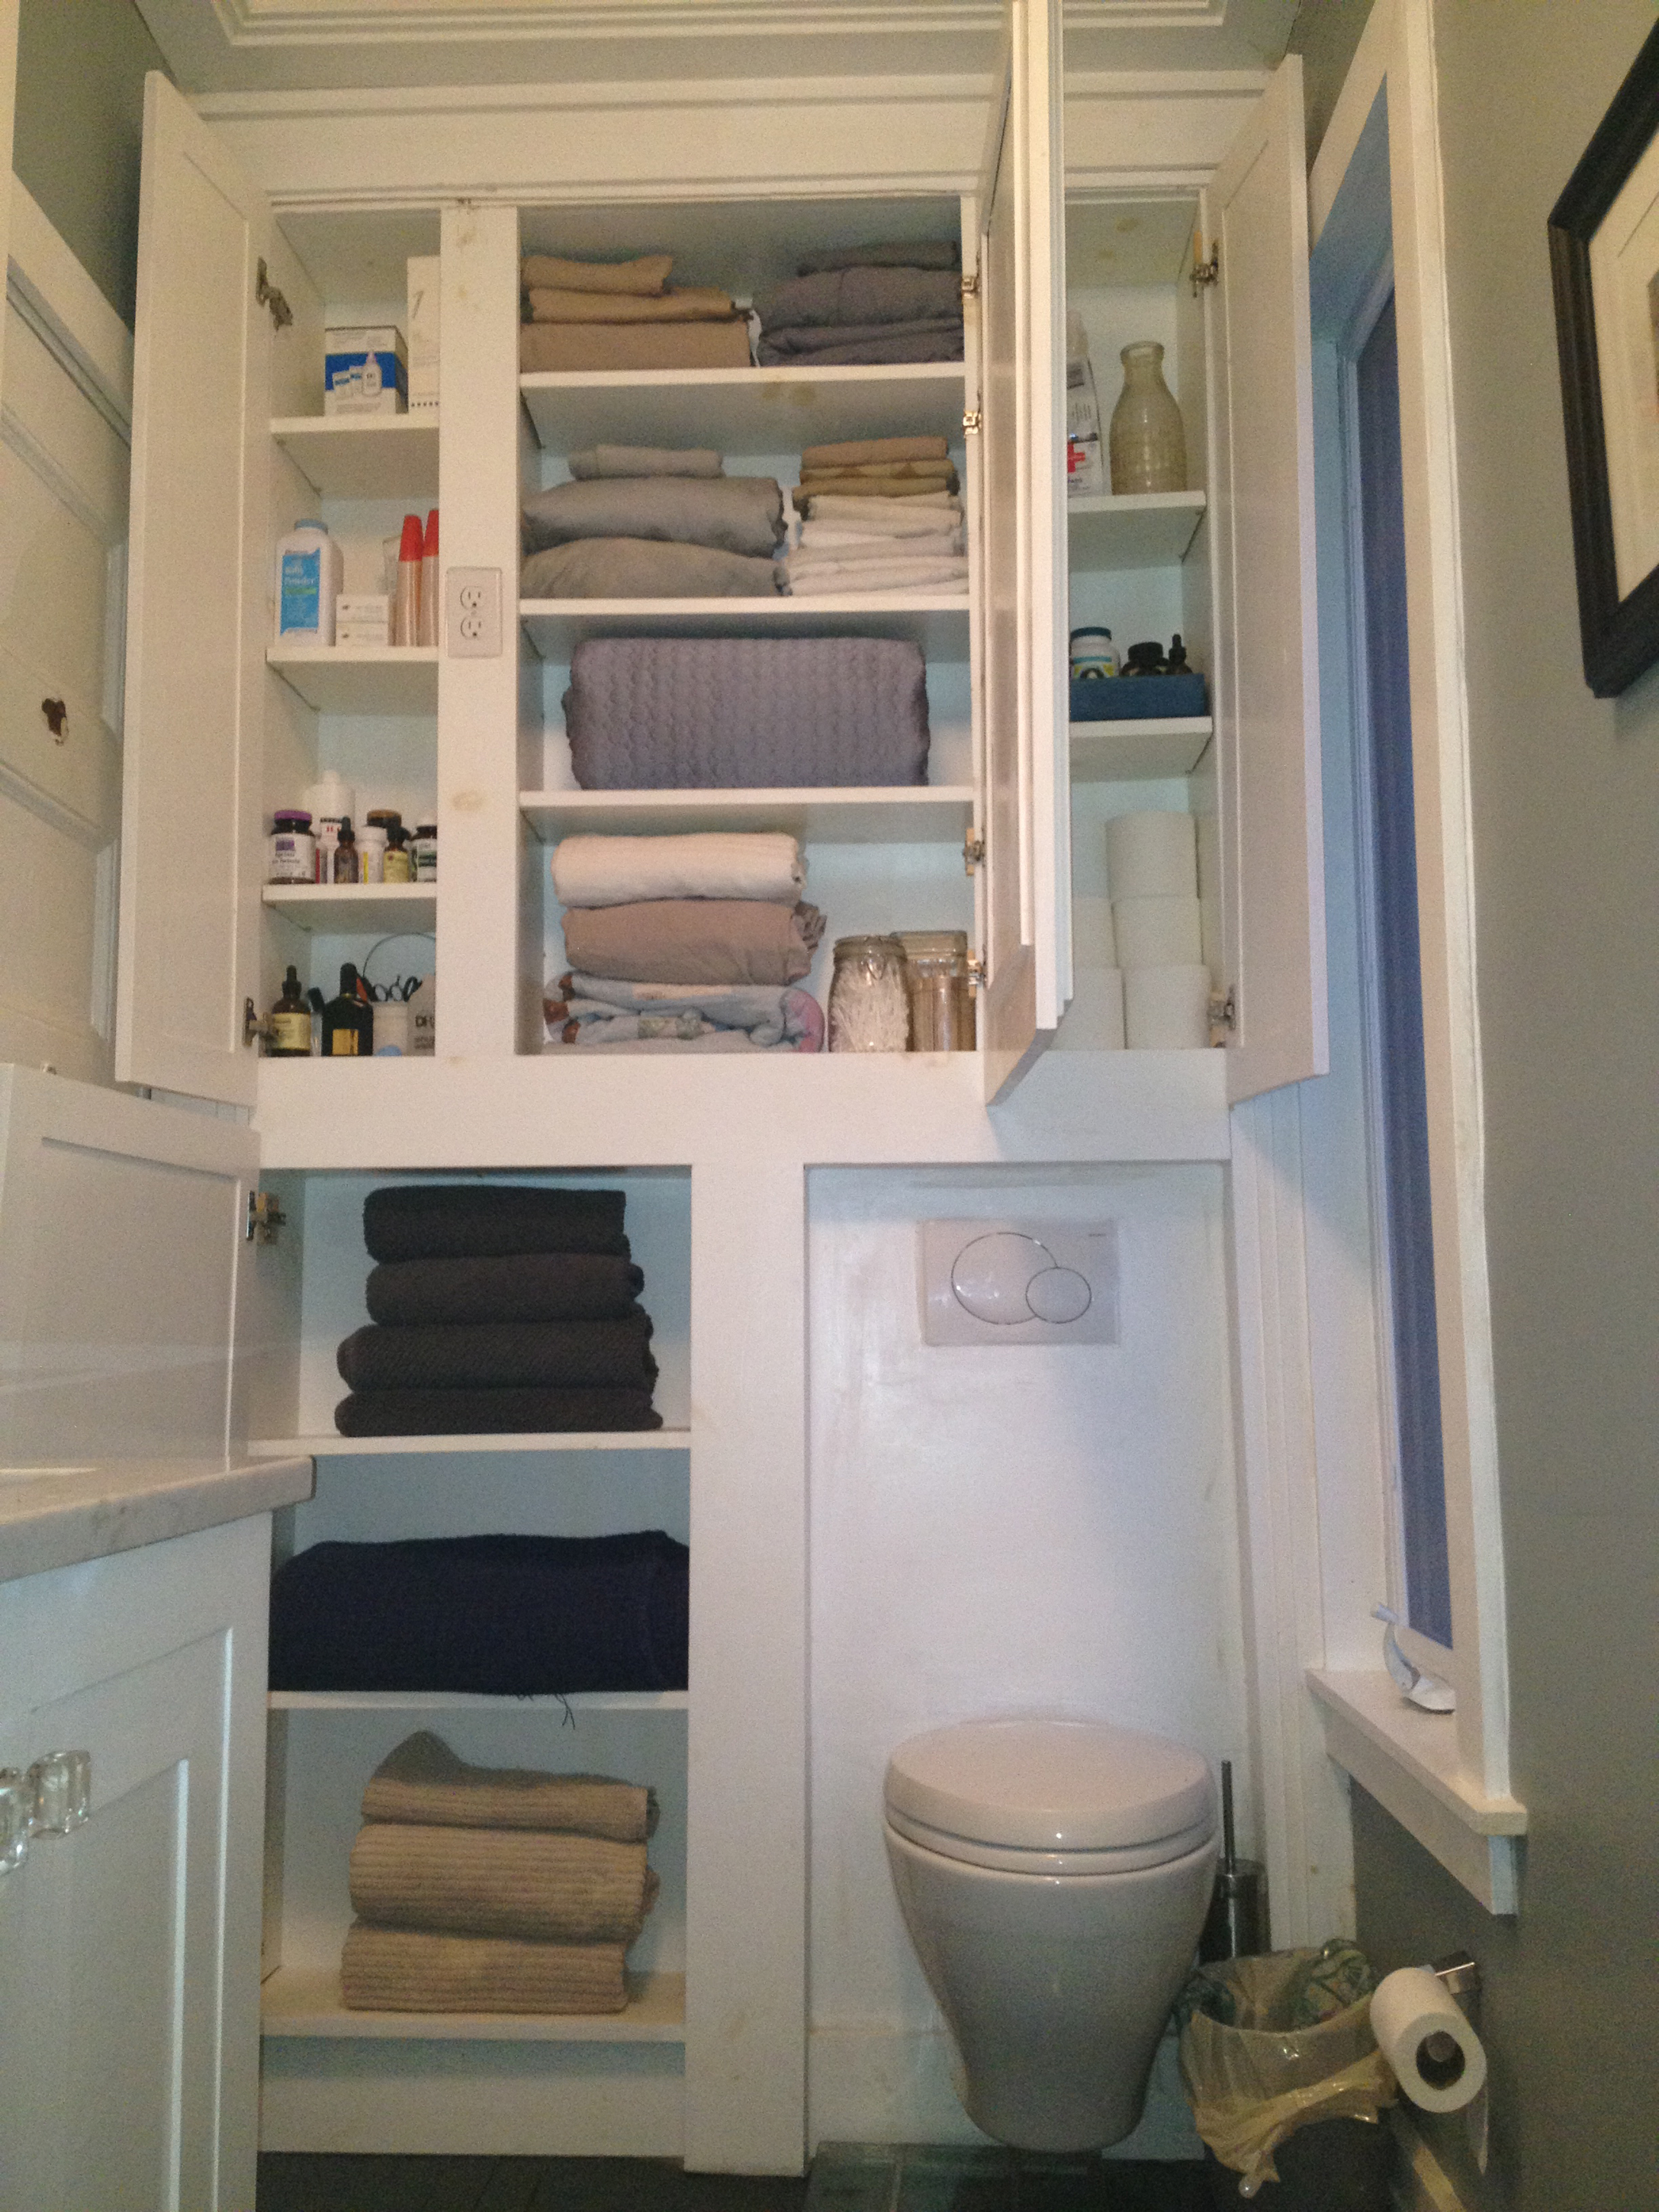 Sweet White Bathroom Wall Cabinet Design Idea With Towels And Bottles Marvelous Bathroom Wall Cabinet Design Ideas (View 10 of 23)